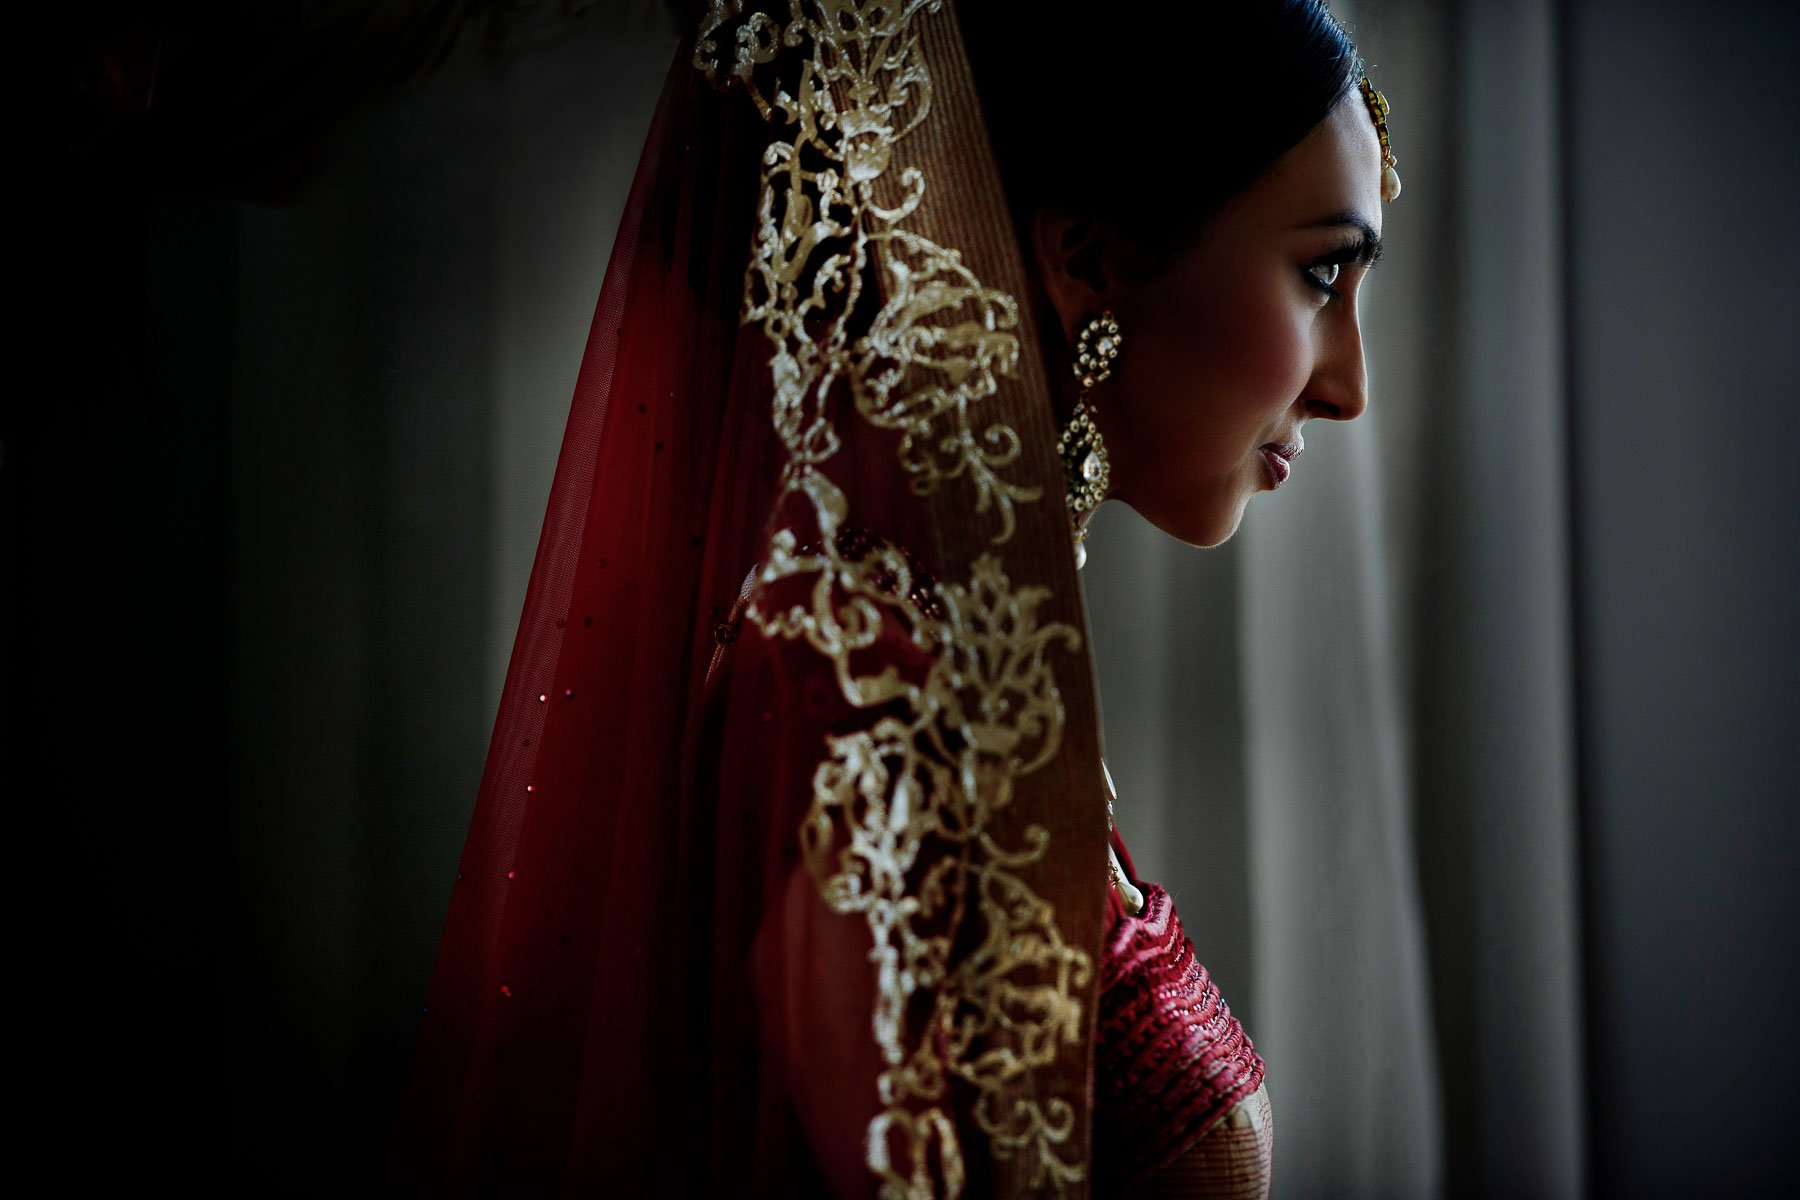 South Asian Bride by Maloman Studios